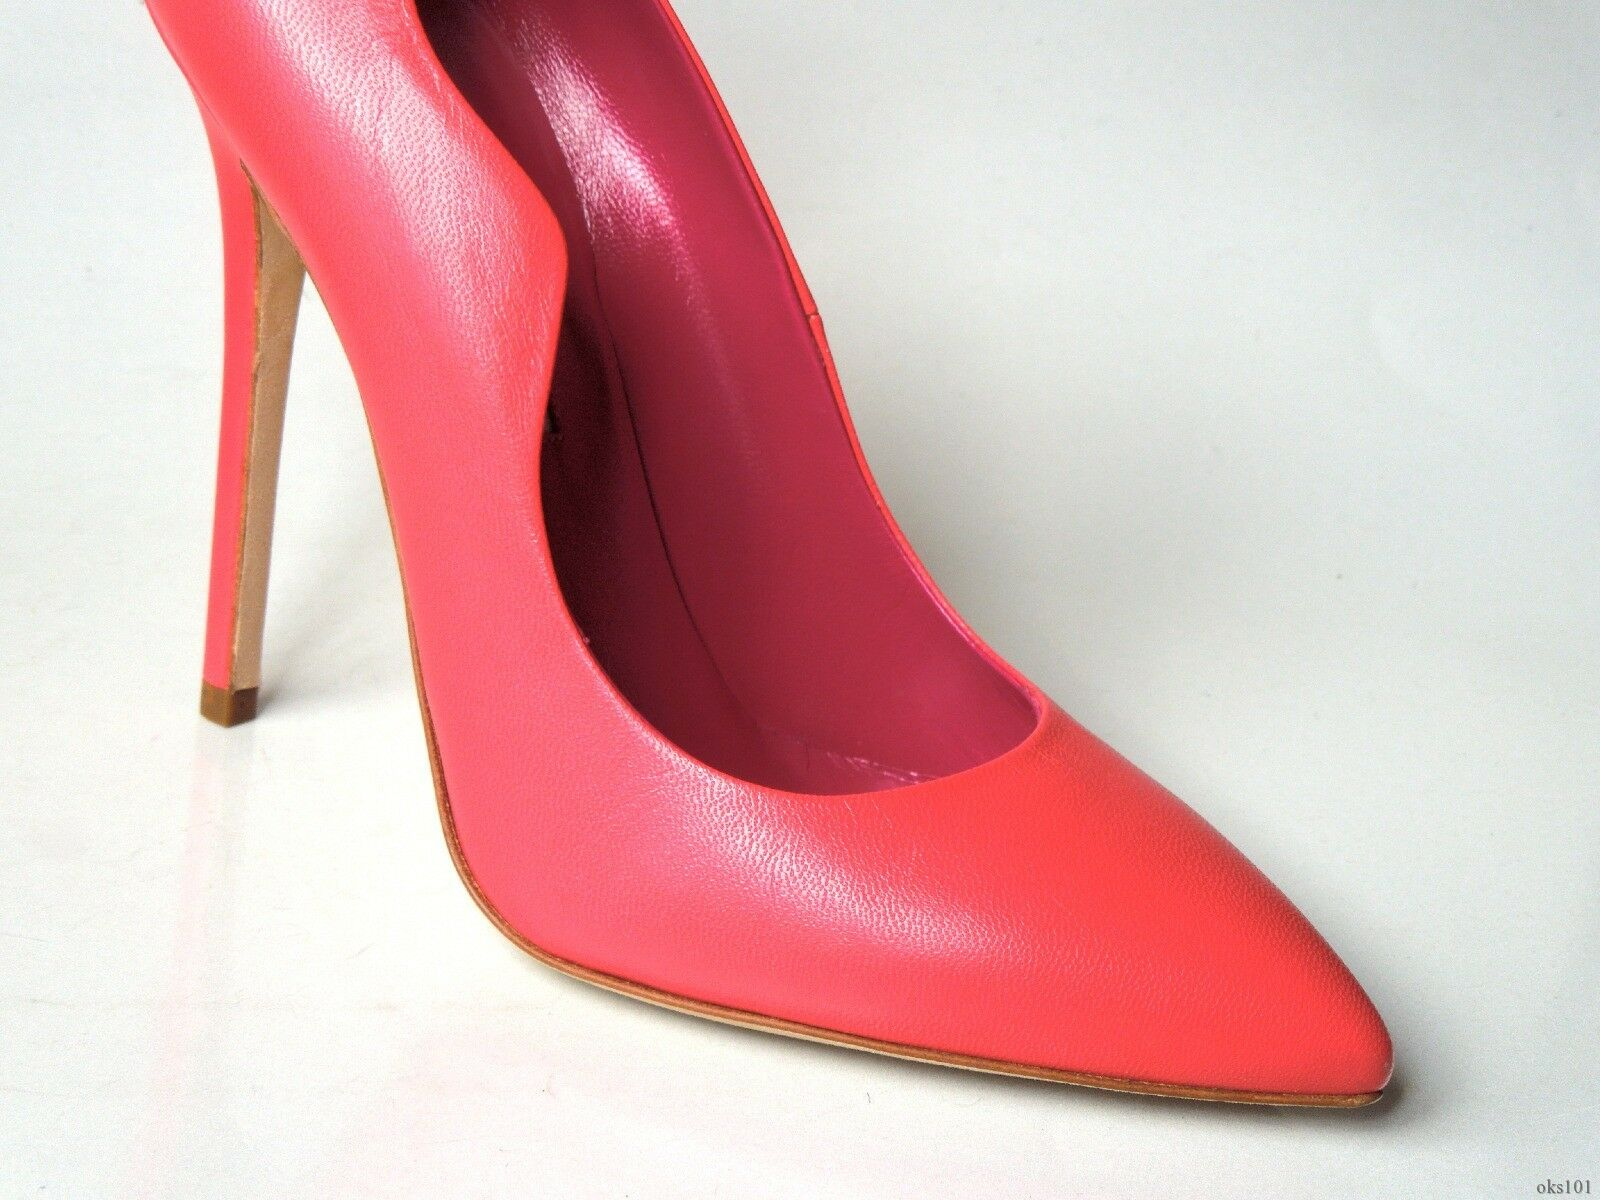 NIB $695 BRIAN ATWOOD 'Besame' CORAL leather scalloped shoes super 39 US 8 - super shoes hot 511ea8